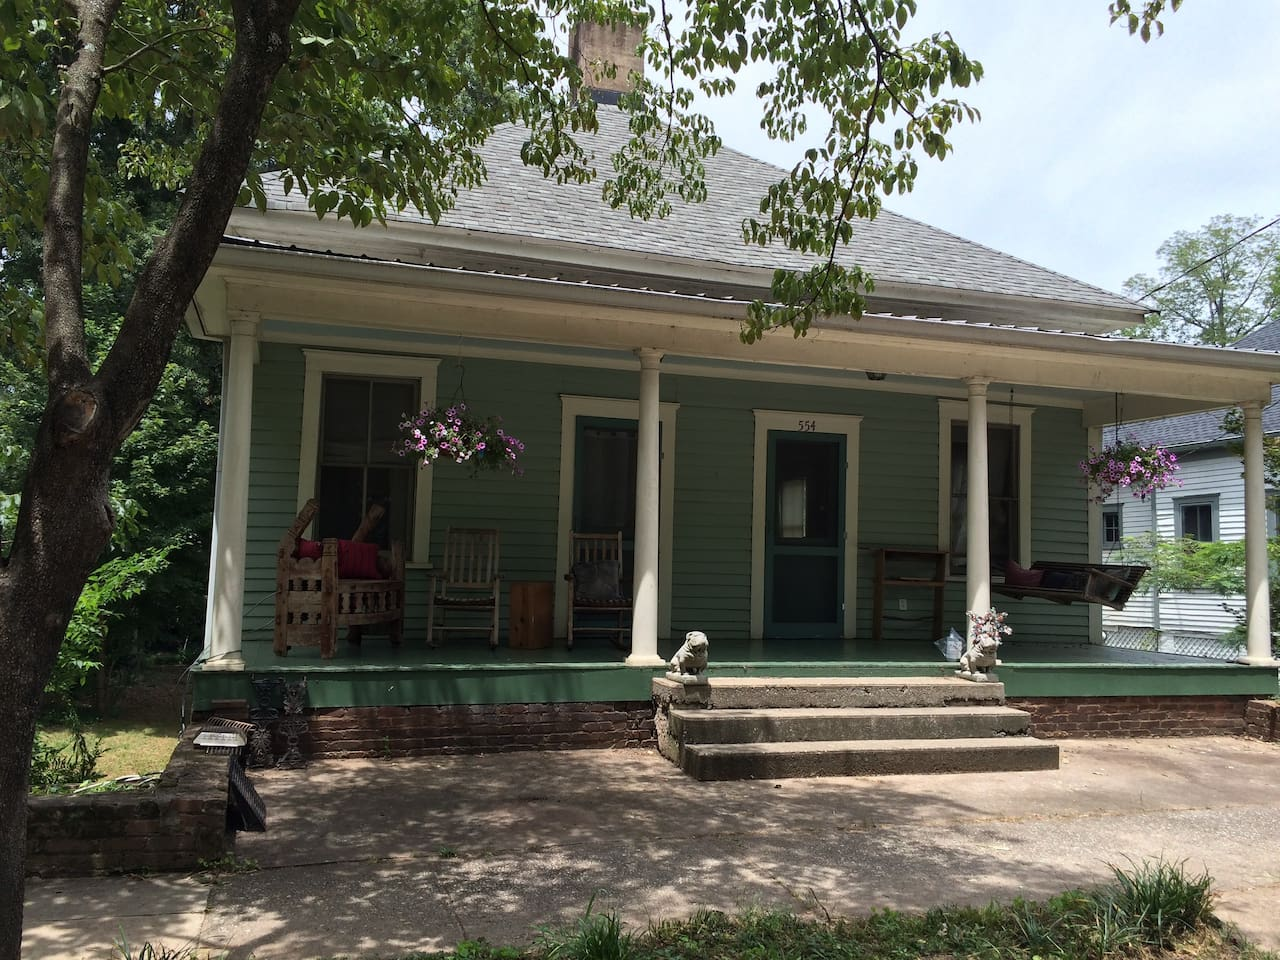 The front of our sweet restored house, built more than 100 years ago.